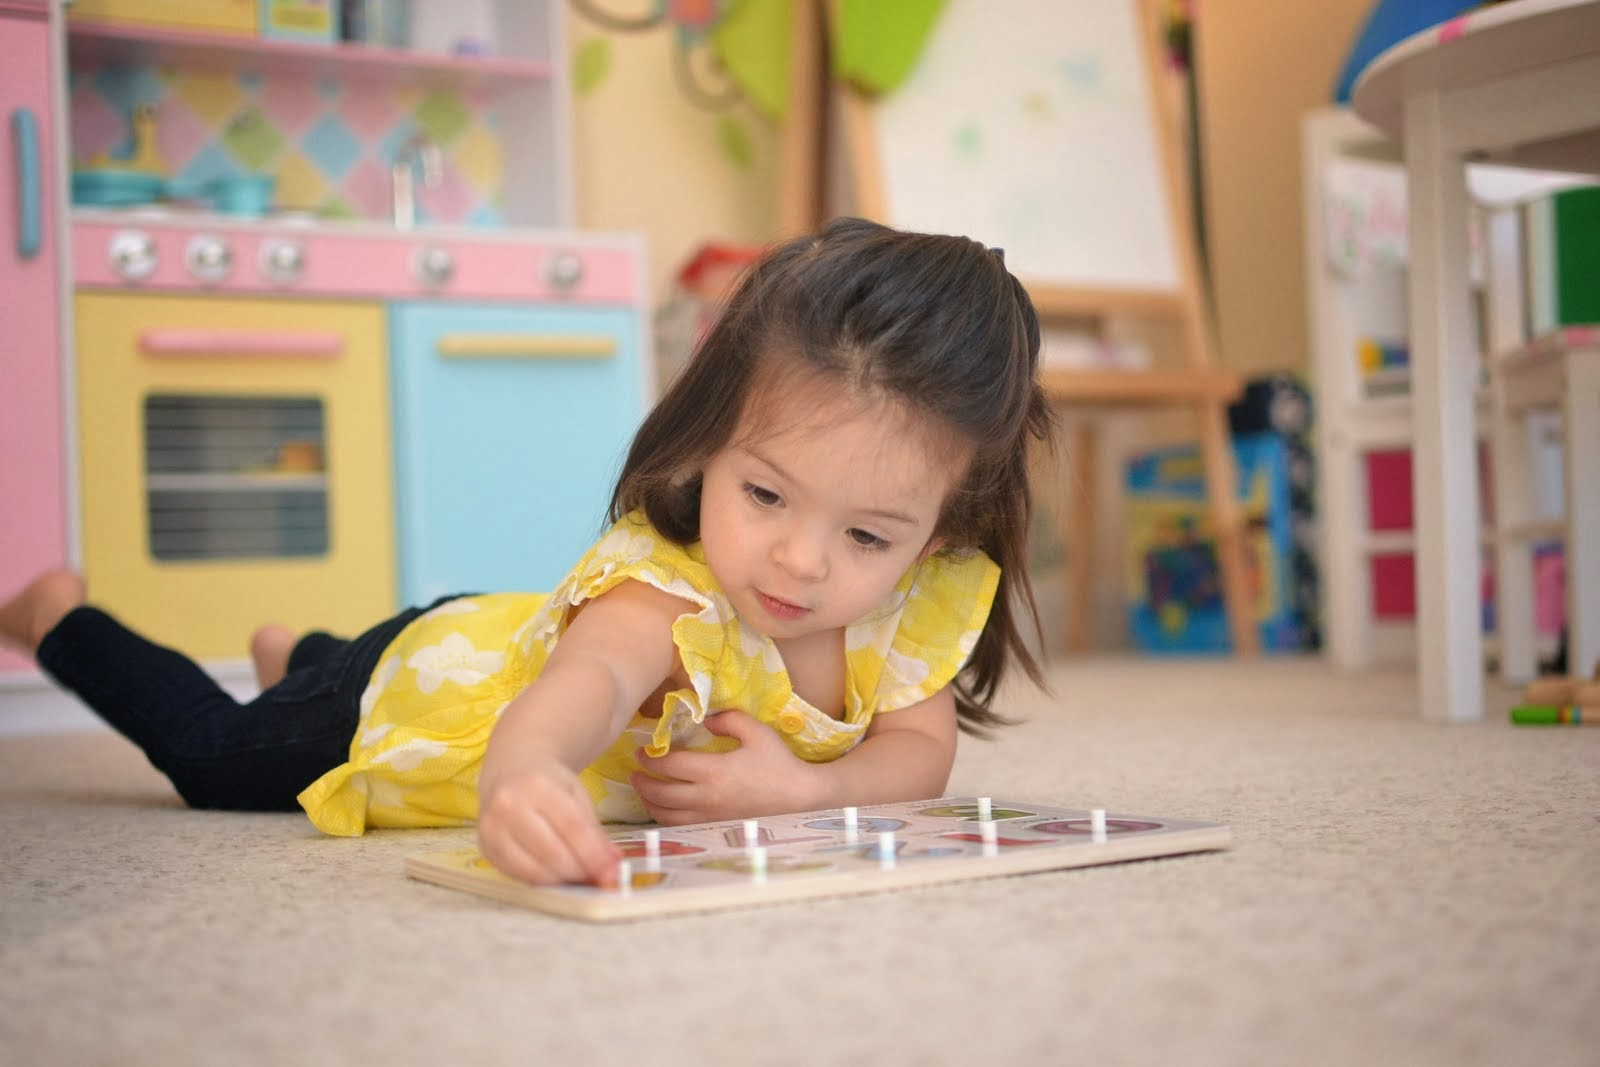 Monthly Subscription of Premium Educational Toys For Kids Under 3